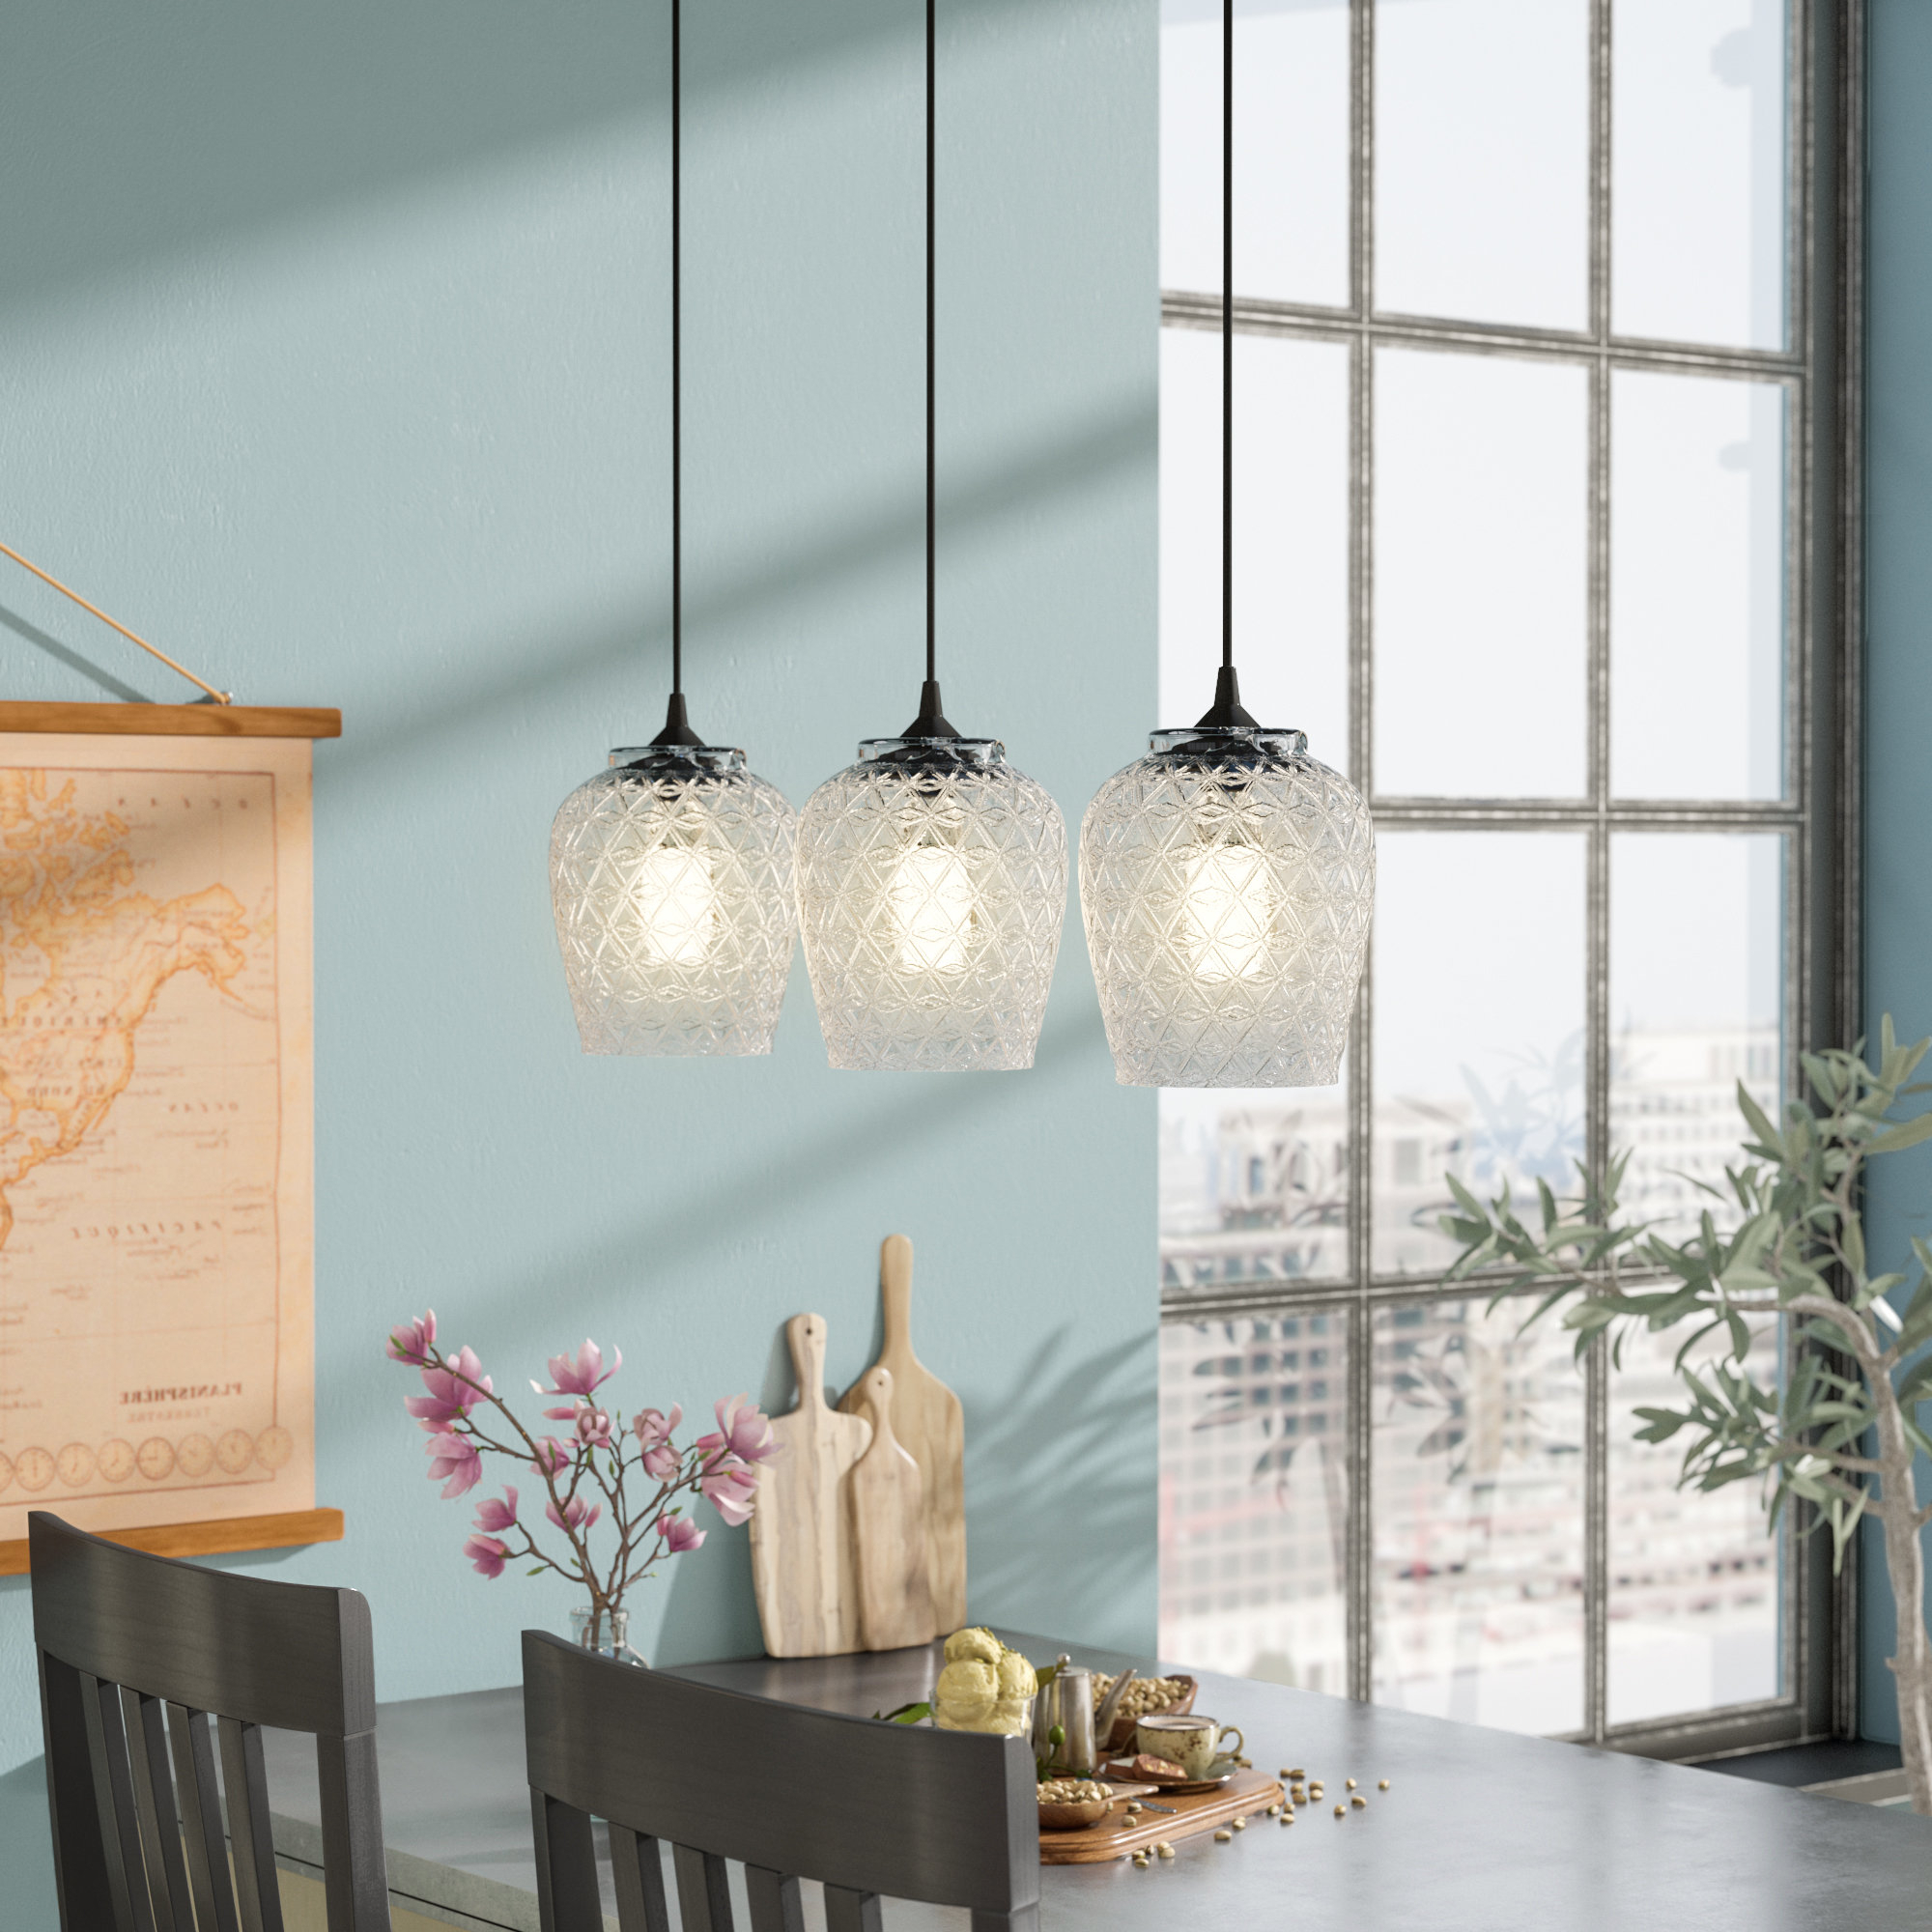 2020 Schutt 4 Light Kitchen Island Pendants In Vintage Filament Bulb Included Pendant Lighting Sale – Up To (Gallery 13 of 20)